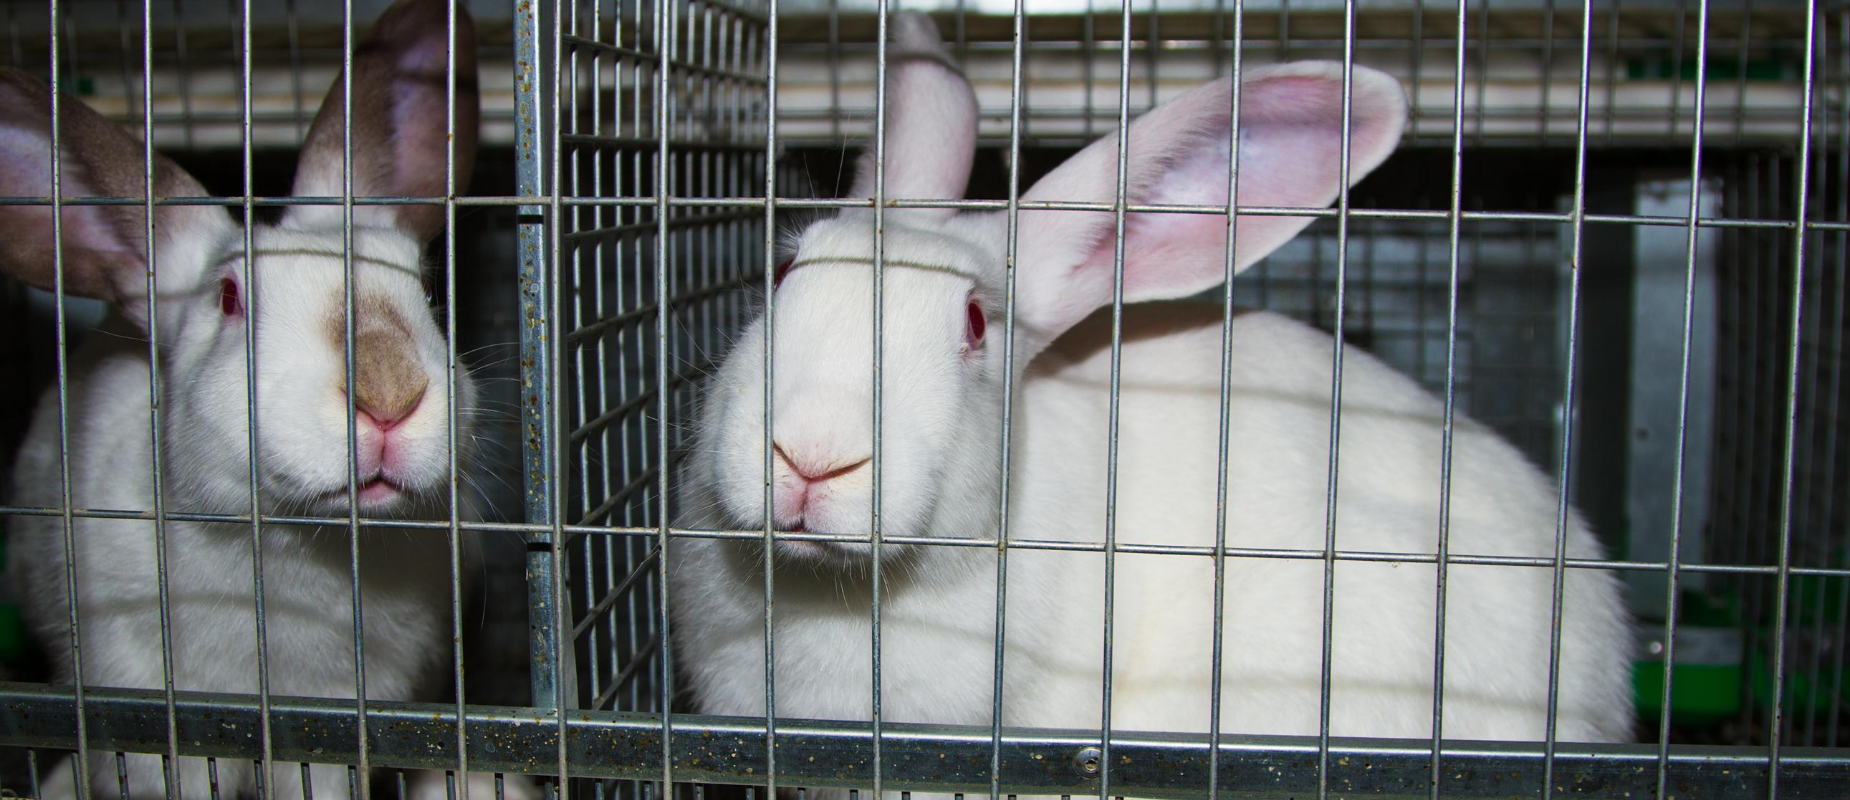 White rabbits sit in small, barren, metal cages